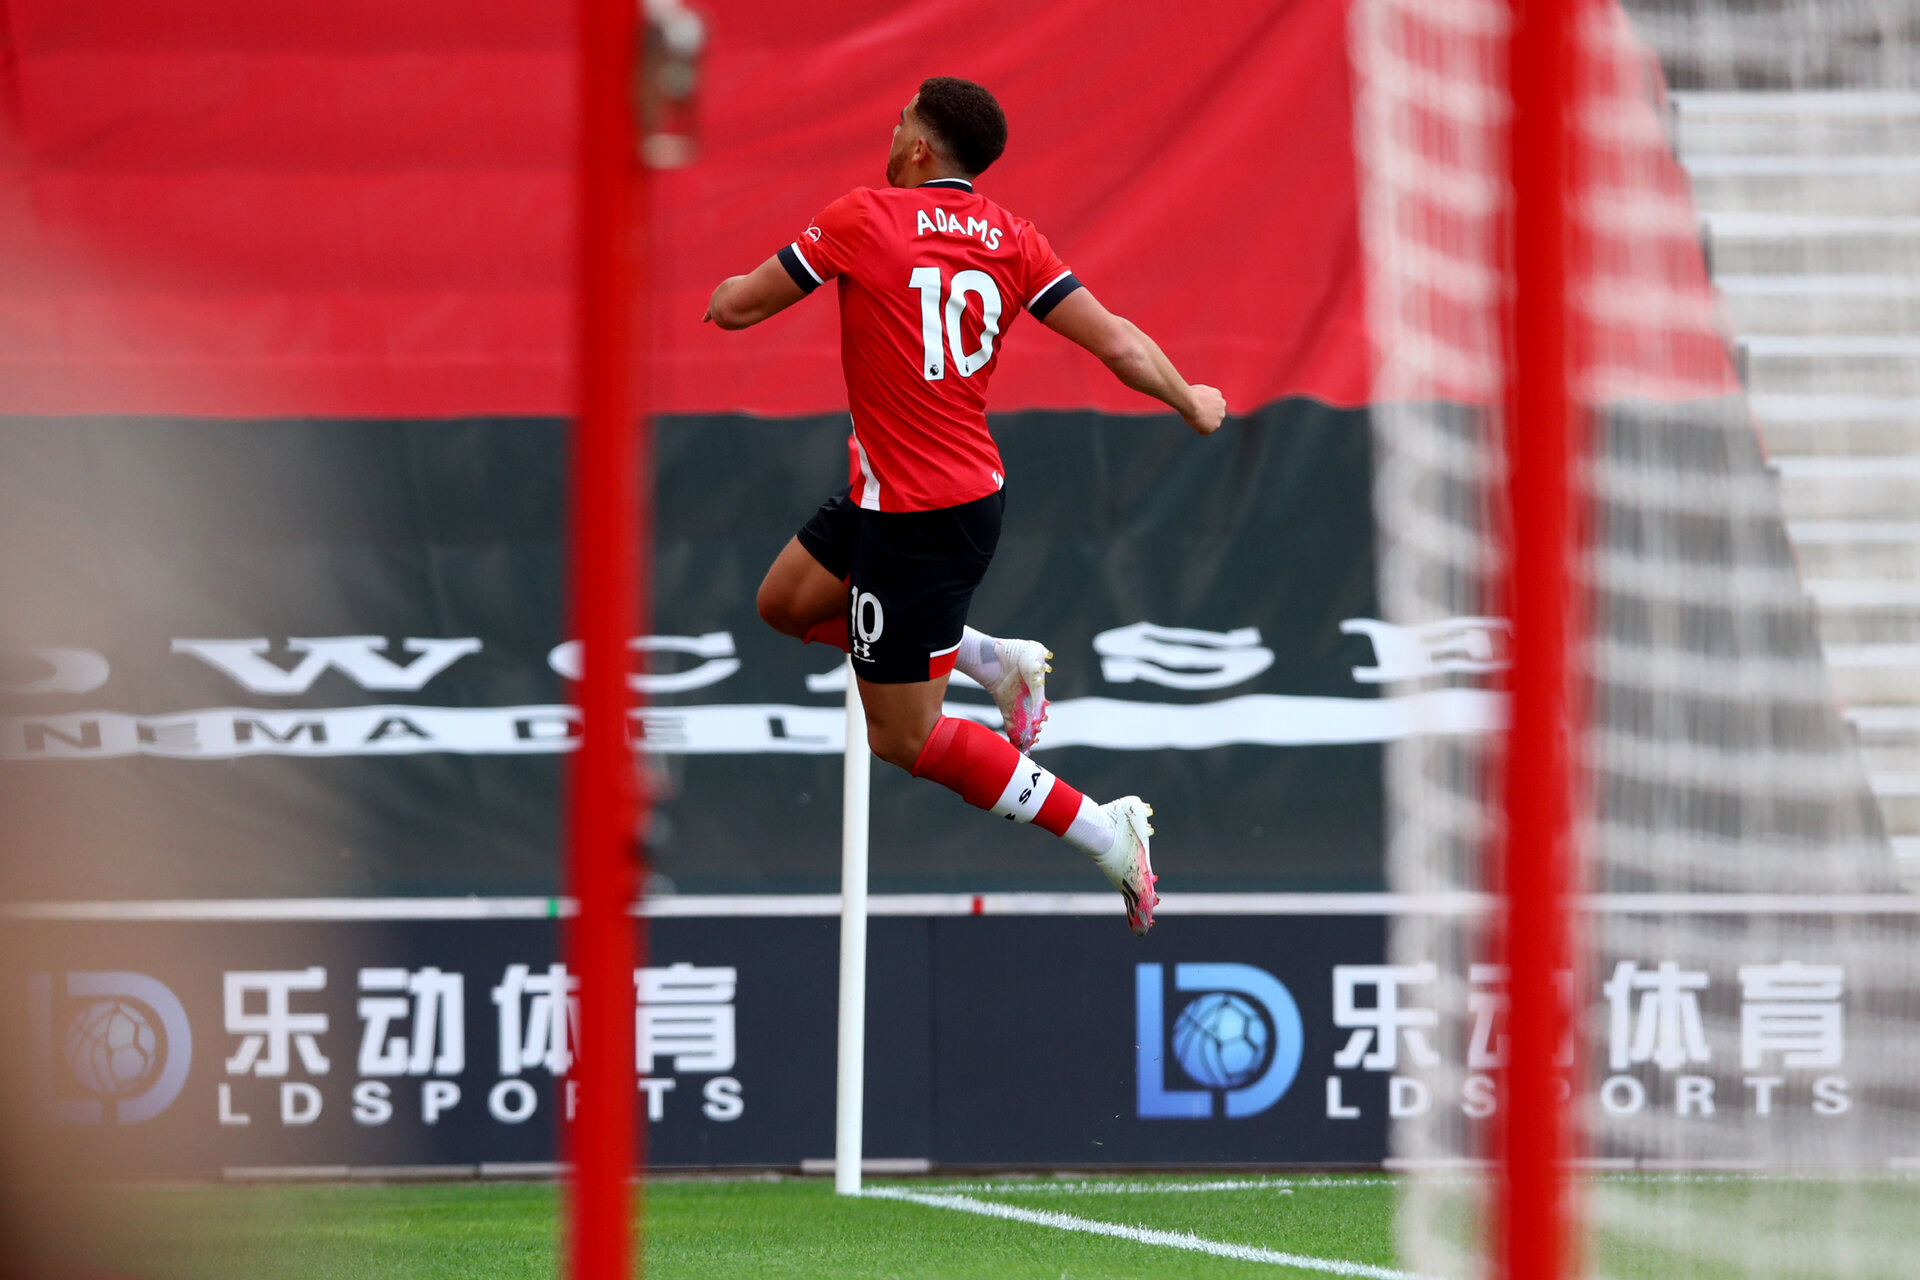 SOUTHAMPTON, ENGLAND - JULY 26: Ché Adams of Southampton goal celebration during the Premier League match between Southampton FC and Sheffield United at St Mary's Stadium on April 17, 2020 in Southampton, United Kingdom. (Photo by Matt Watson/Southampton FC via Getty Images)